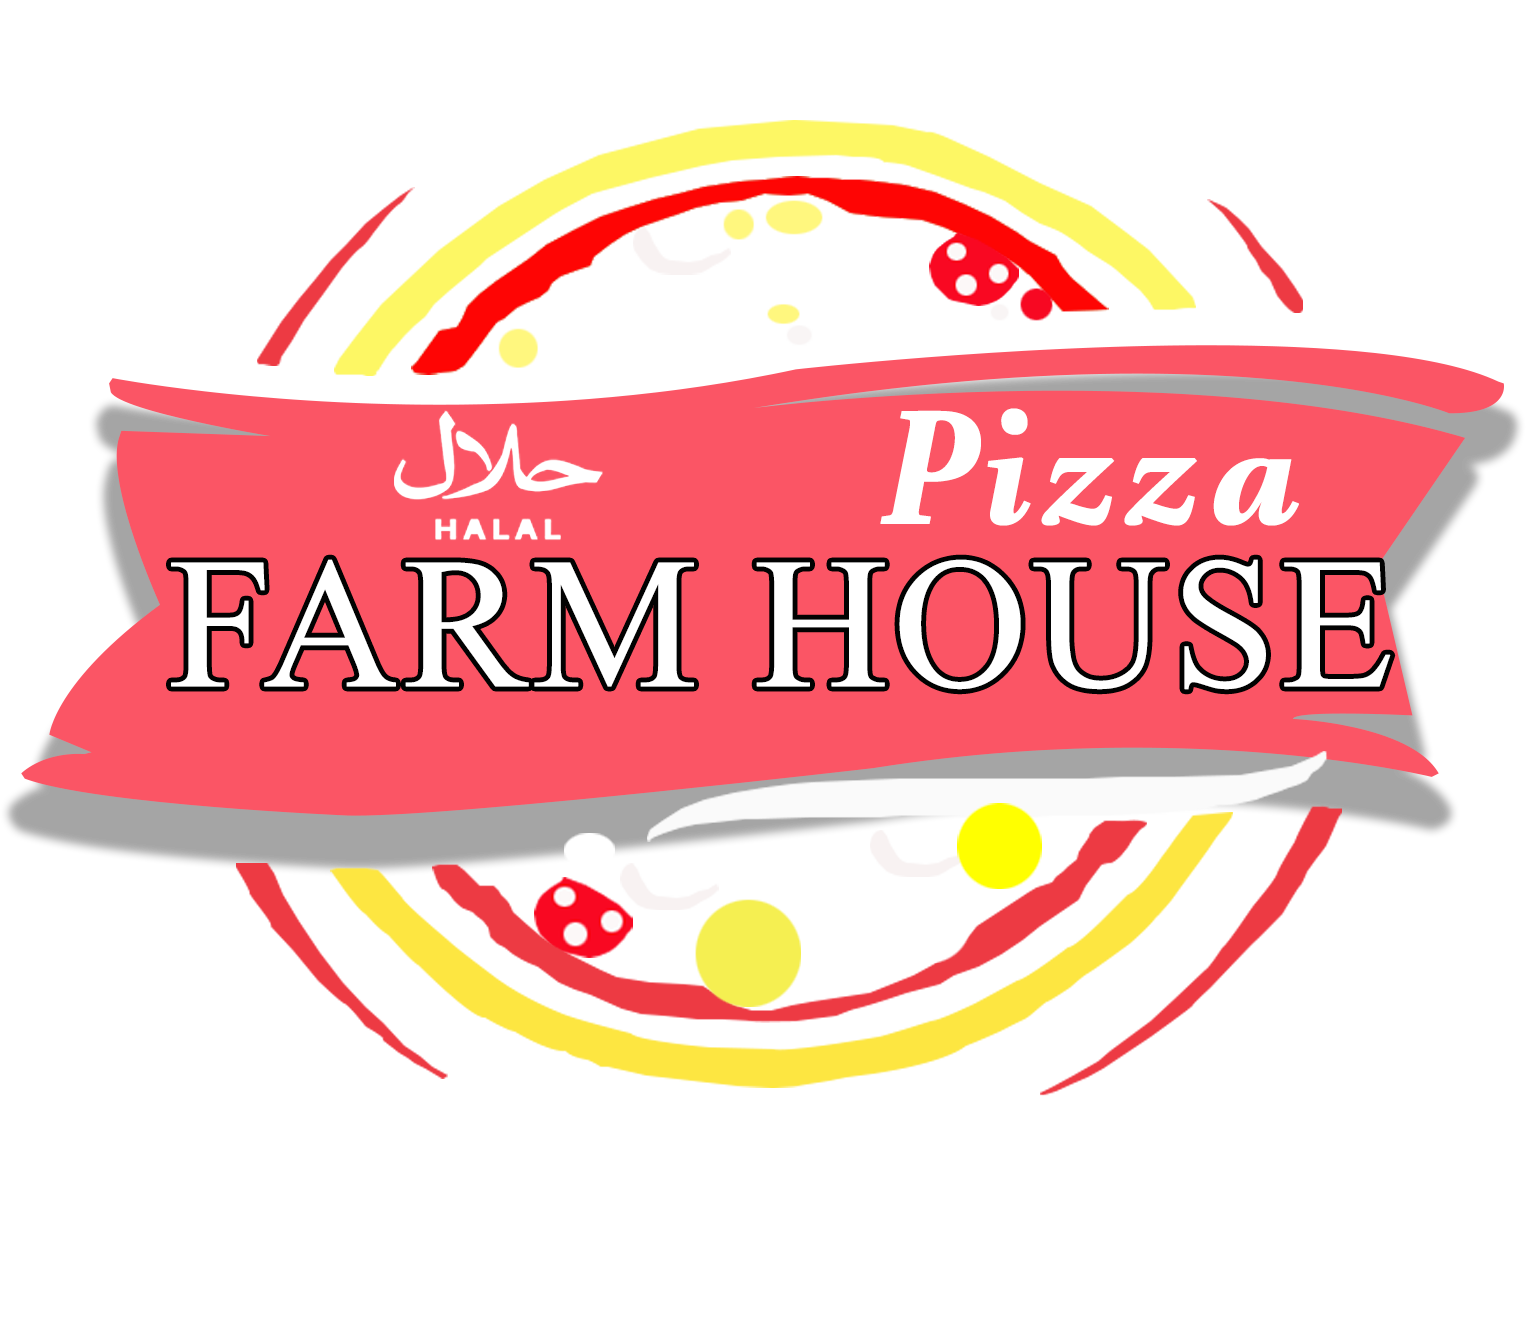 Farmhouse Pizza Order Online Farmhouse Pizza Menu Menu